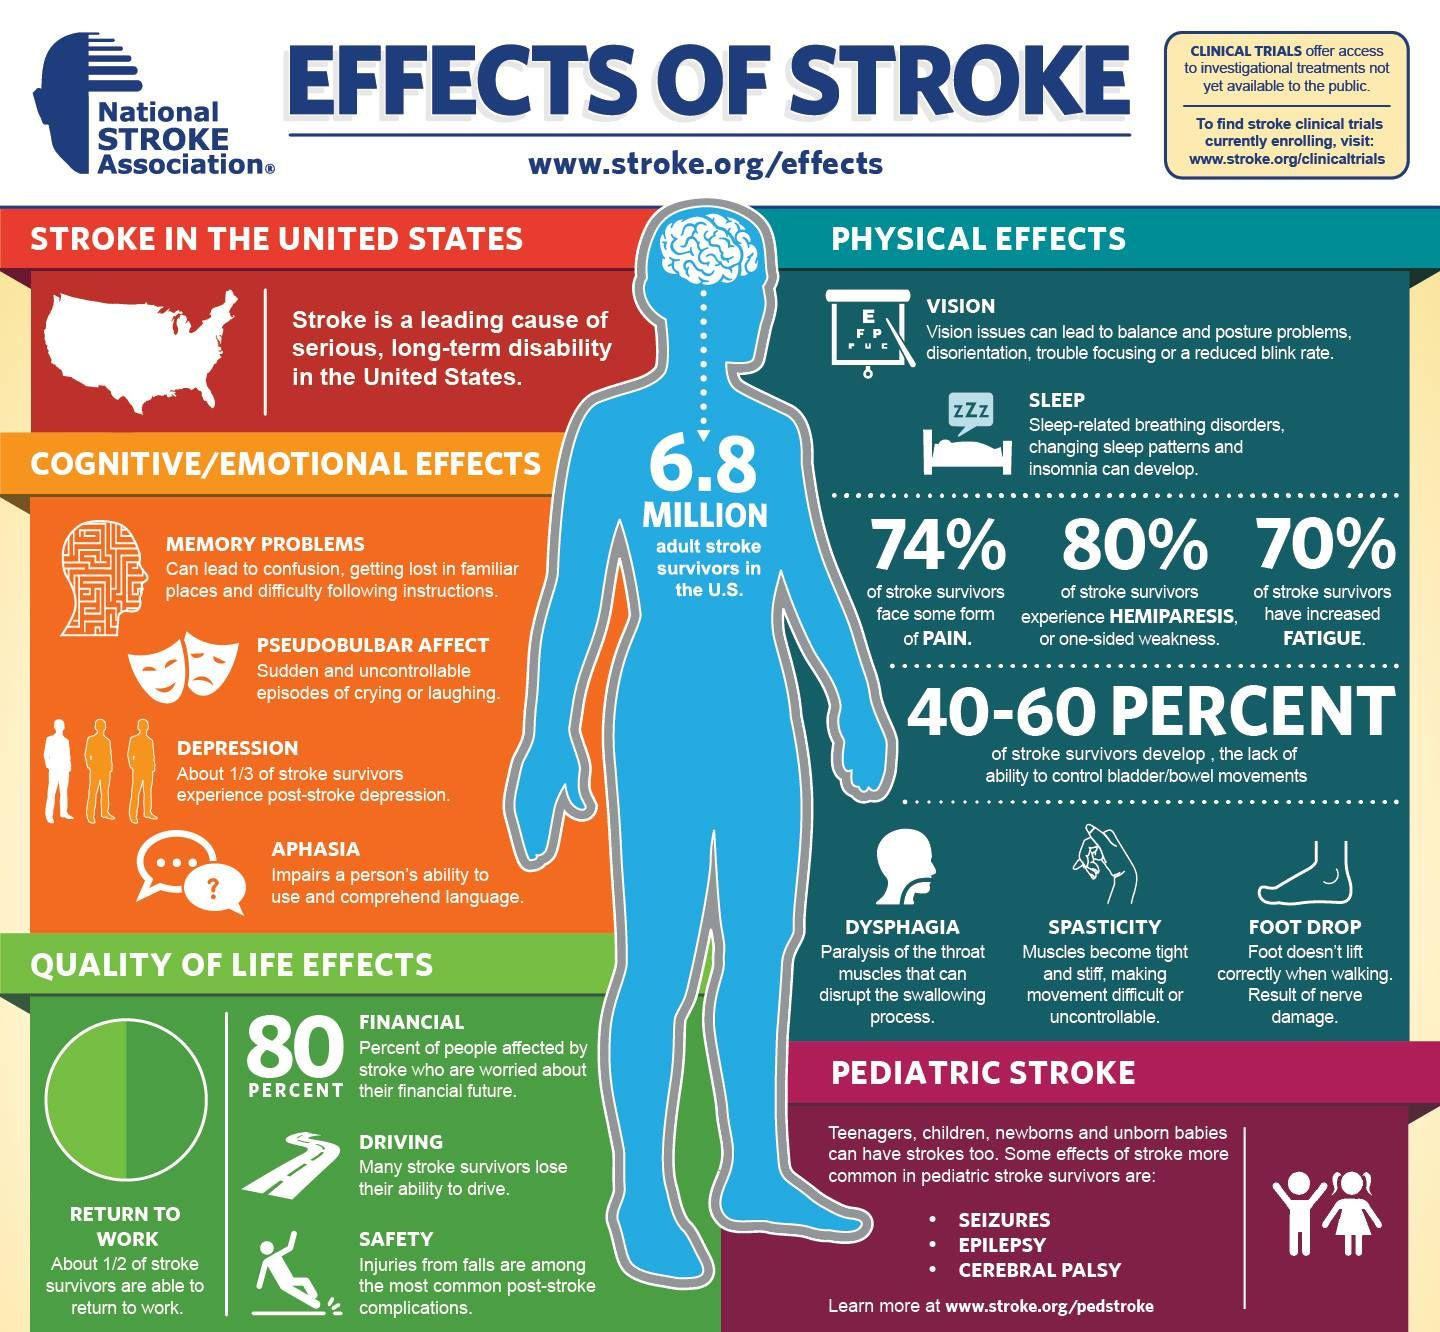 EFFECTS OF STROKE - Although stroke is the fourth leading cause of ...